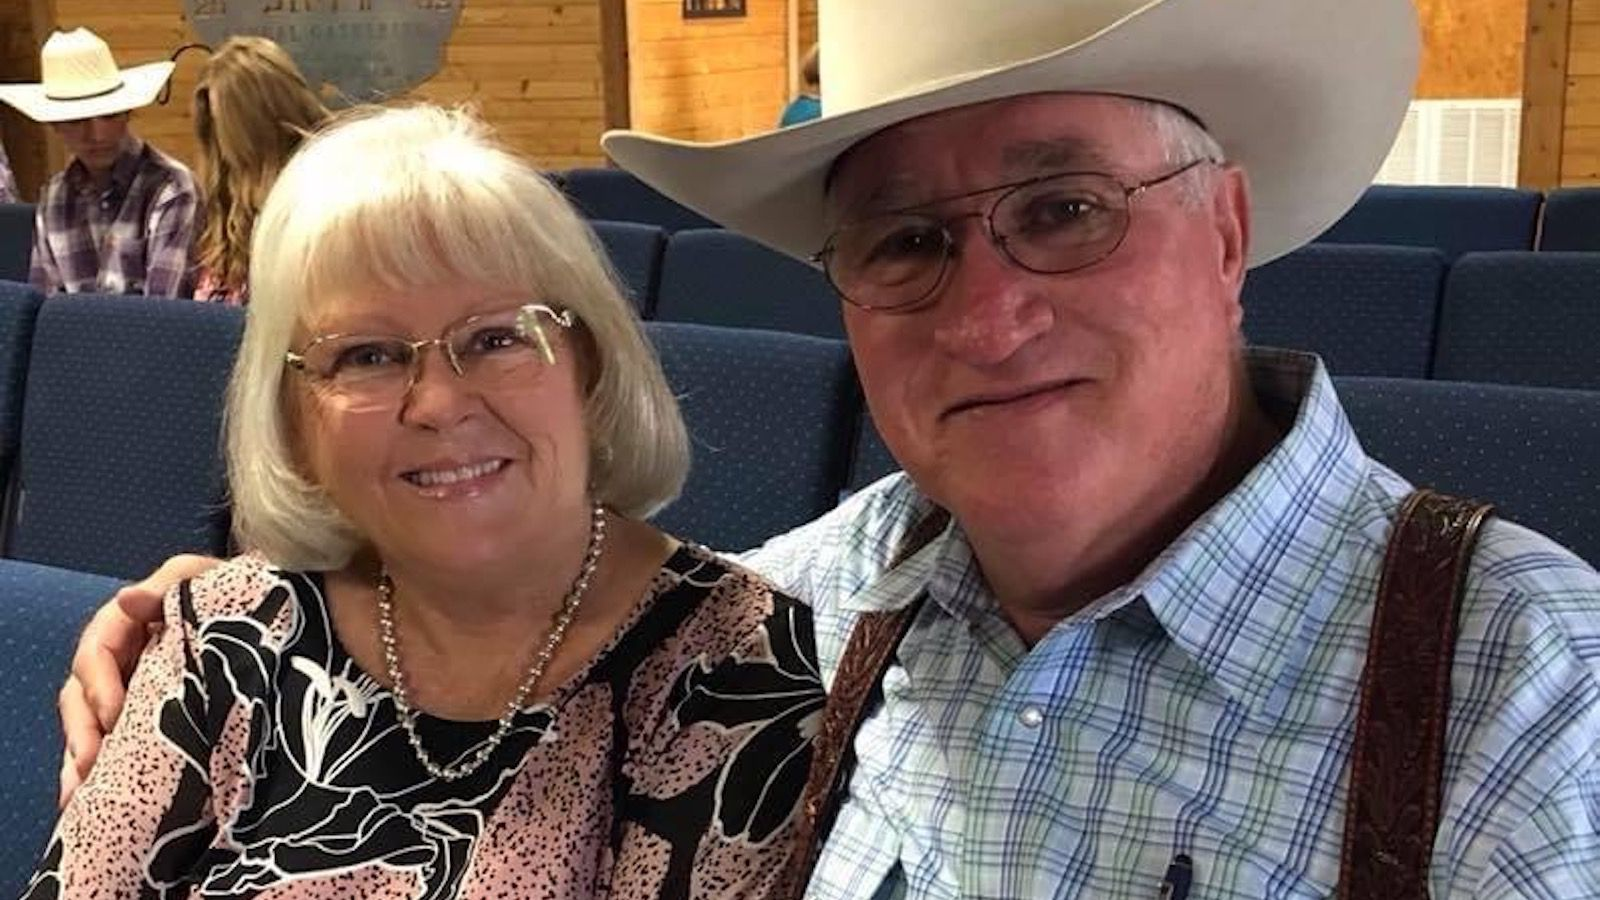 Diane Partin and her husband, Roy, have been married 43 years. He was with her every step of the way after she was diagnosed with breast cancer in 2018.